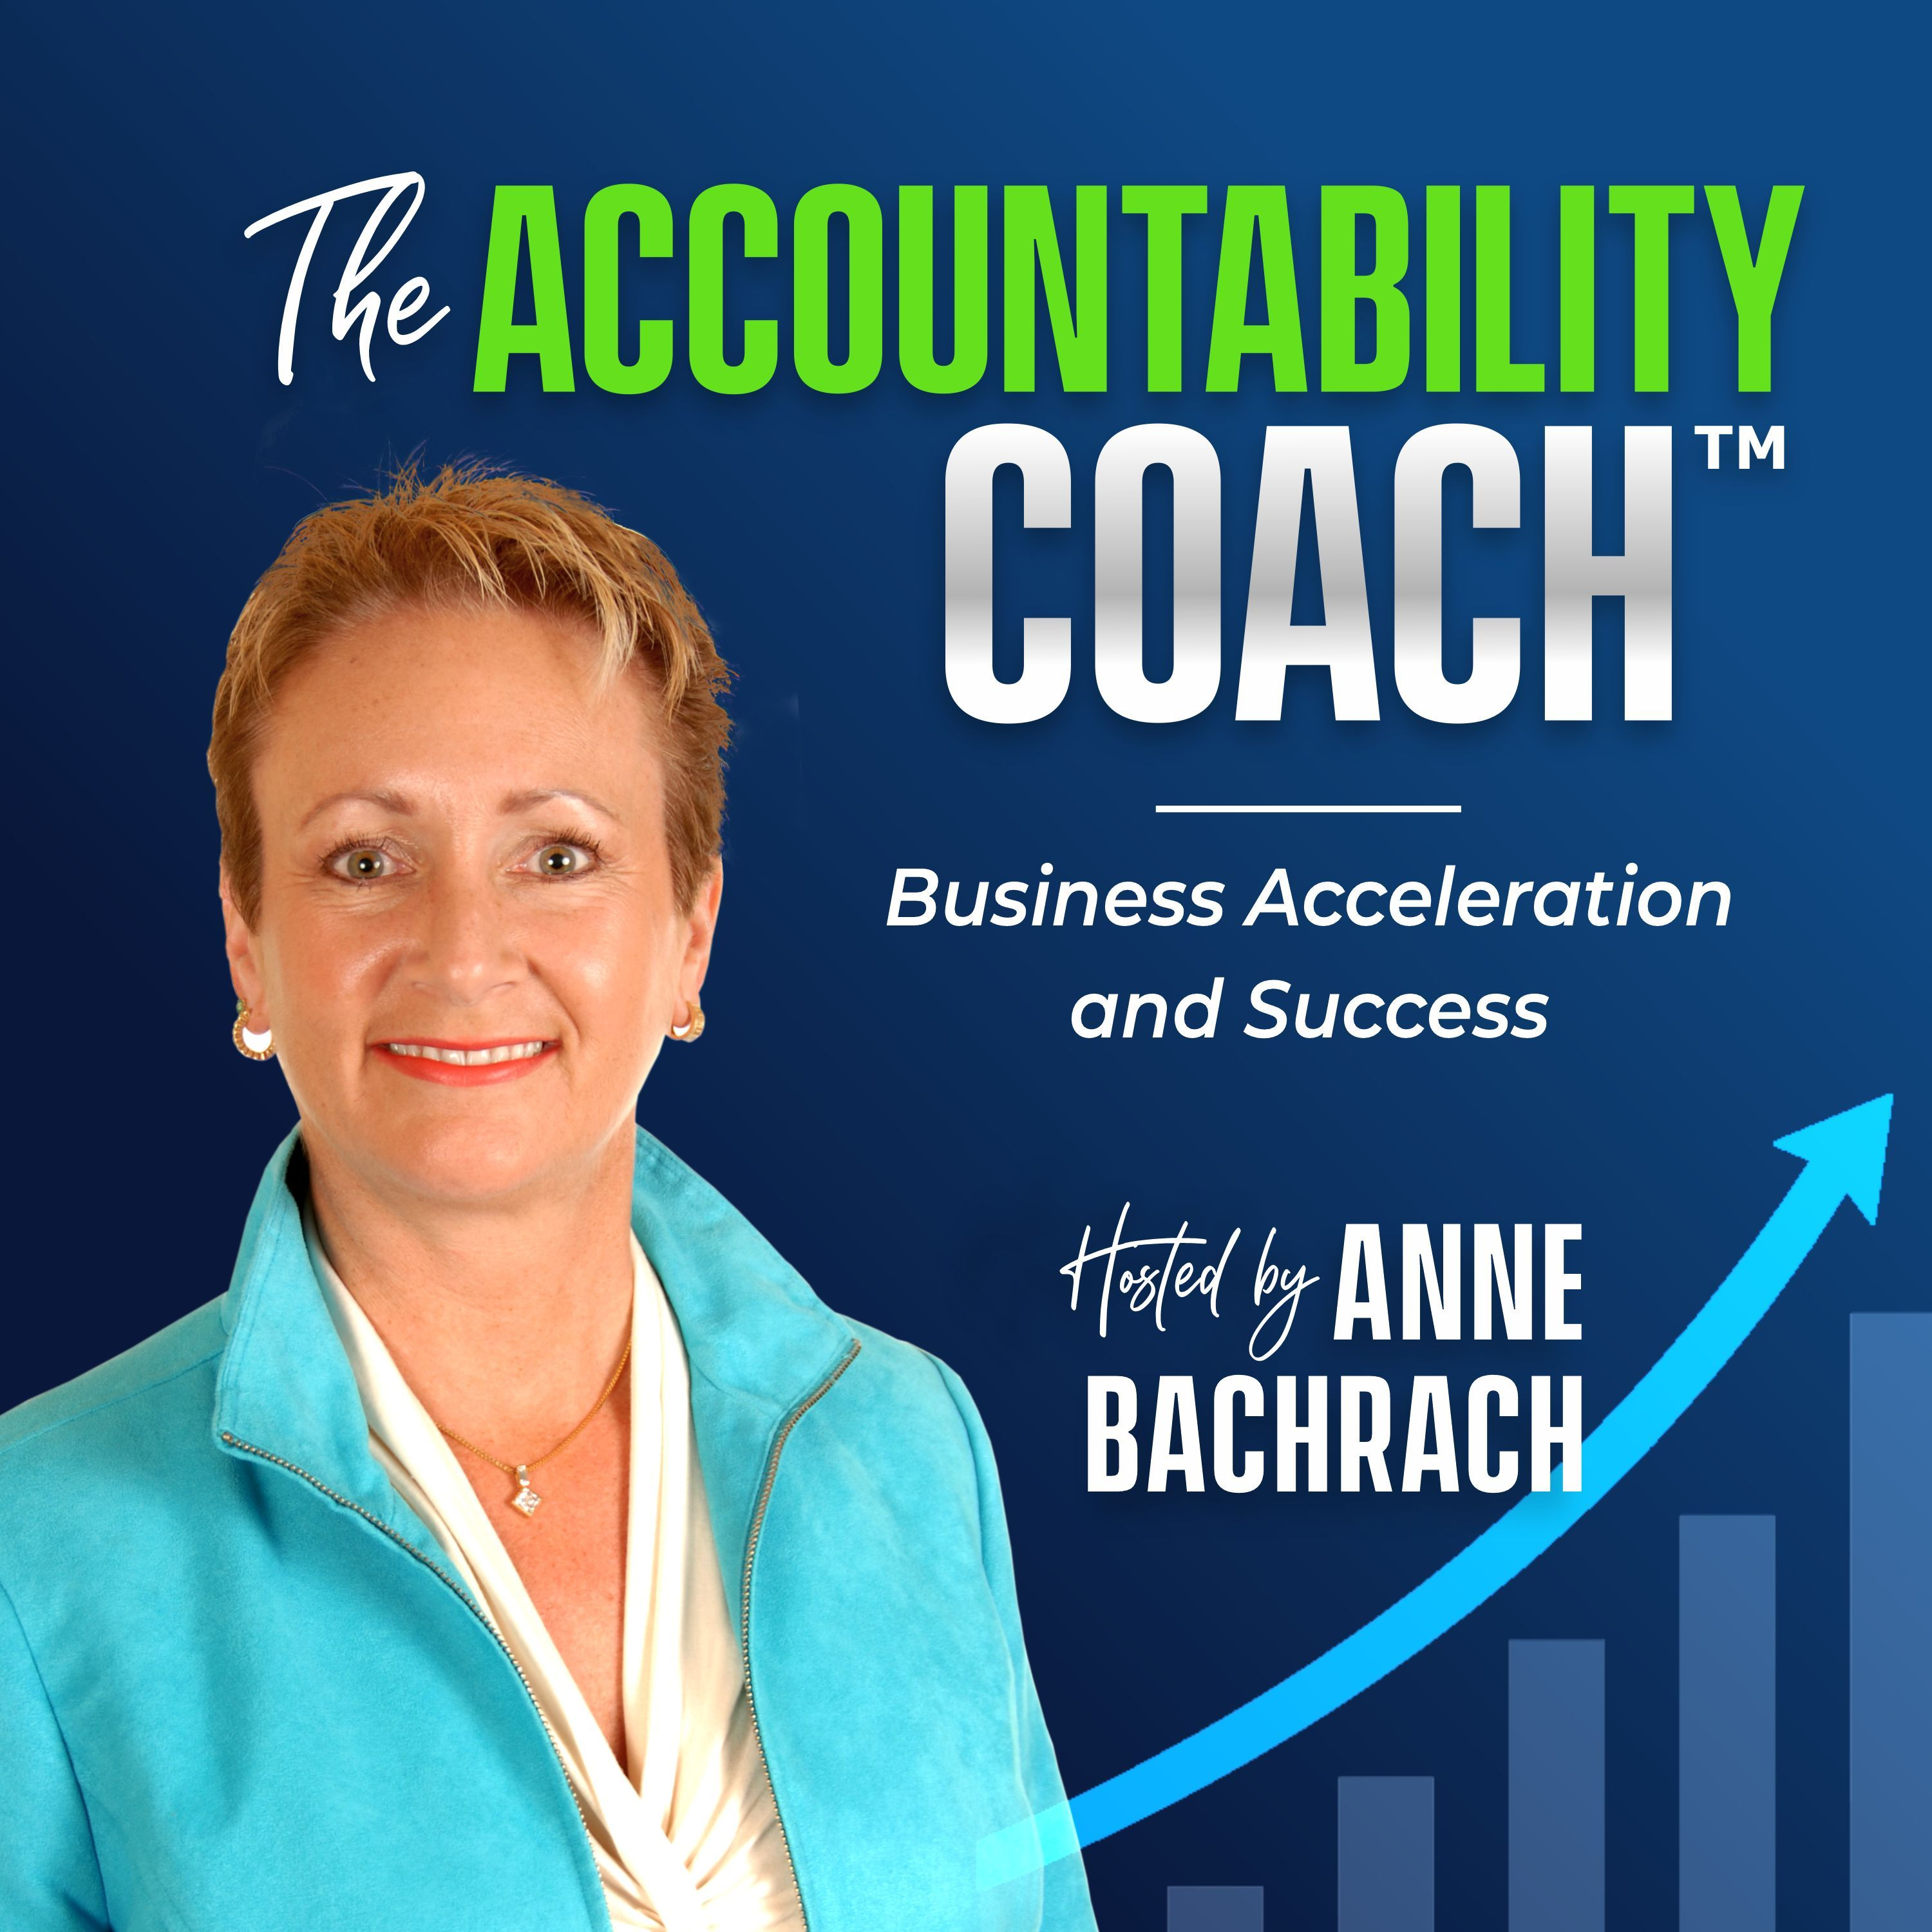 <![CDATA[The Accountability Coach: Business Acceleration|Productivity]]>